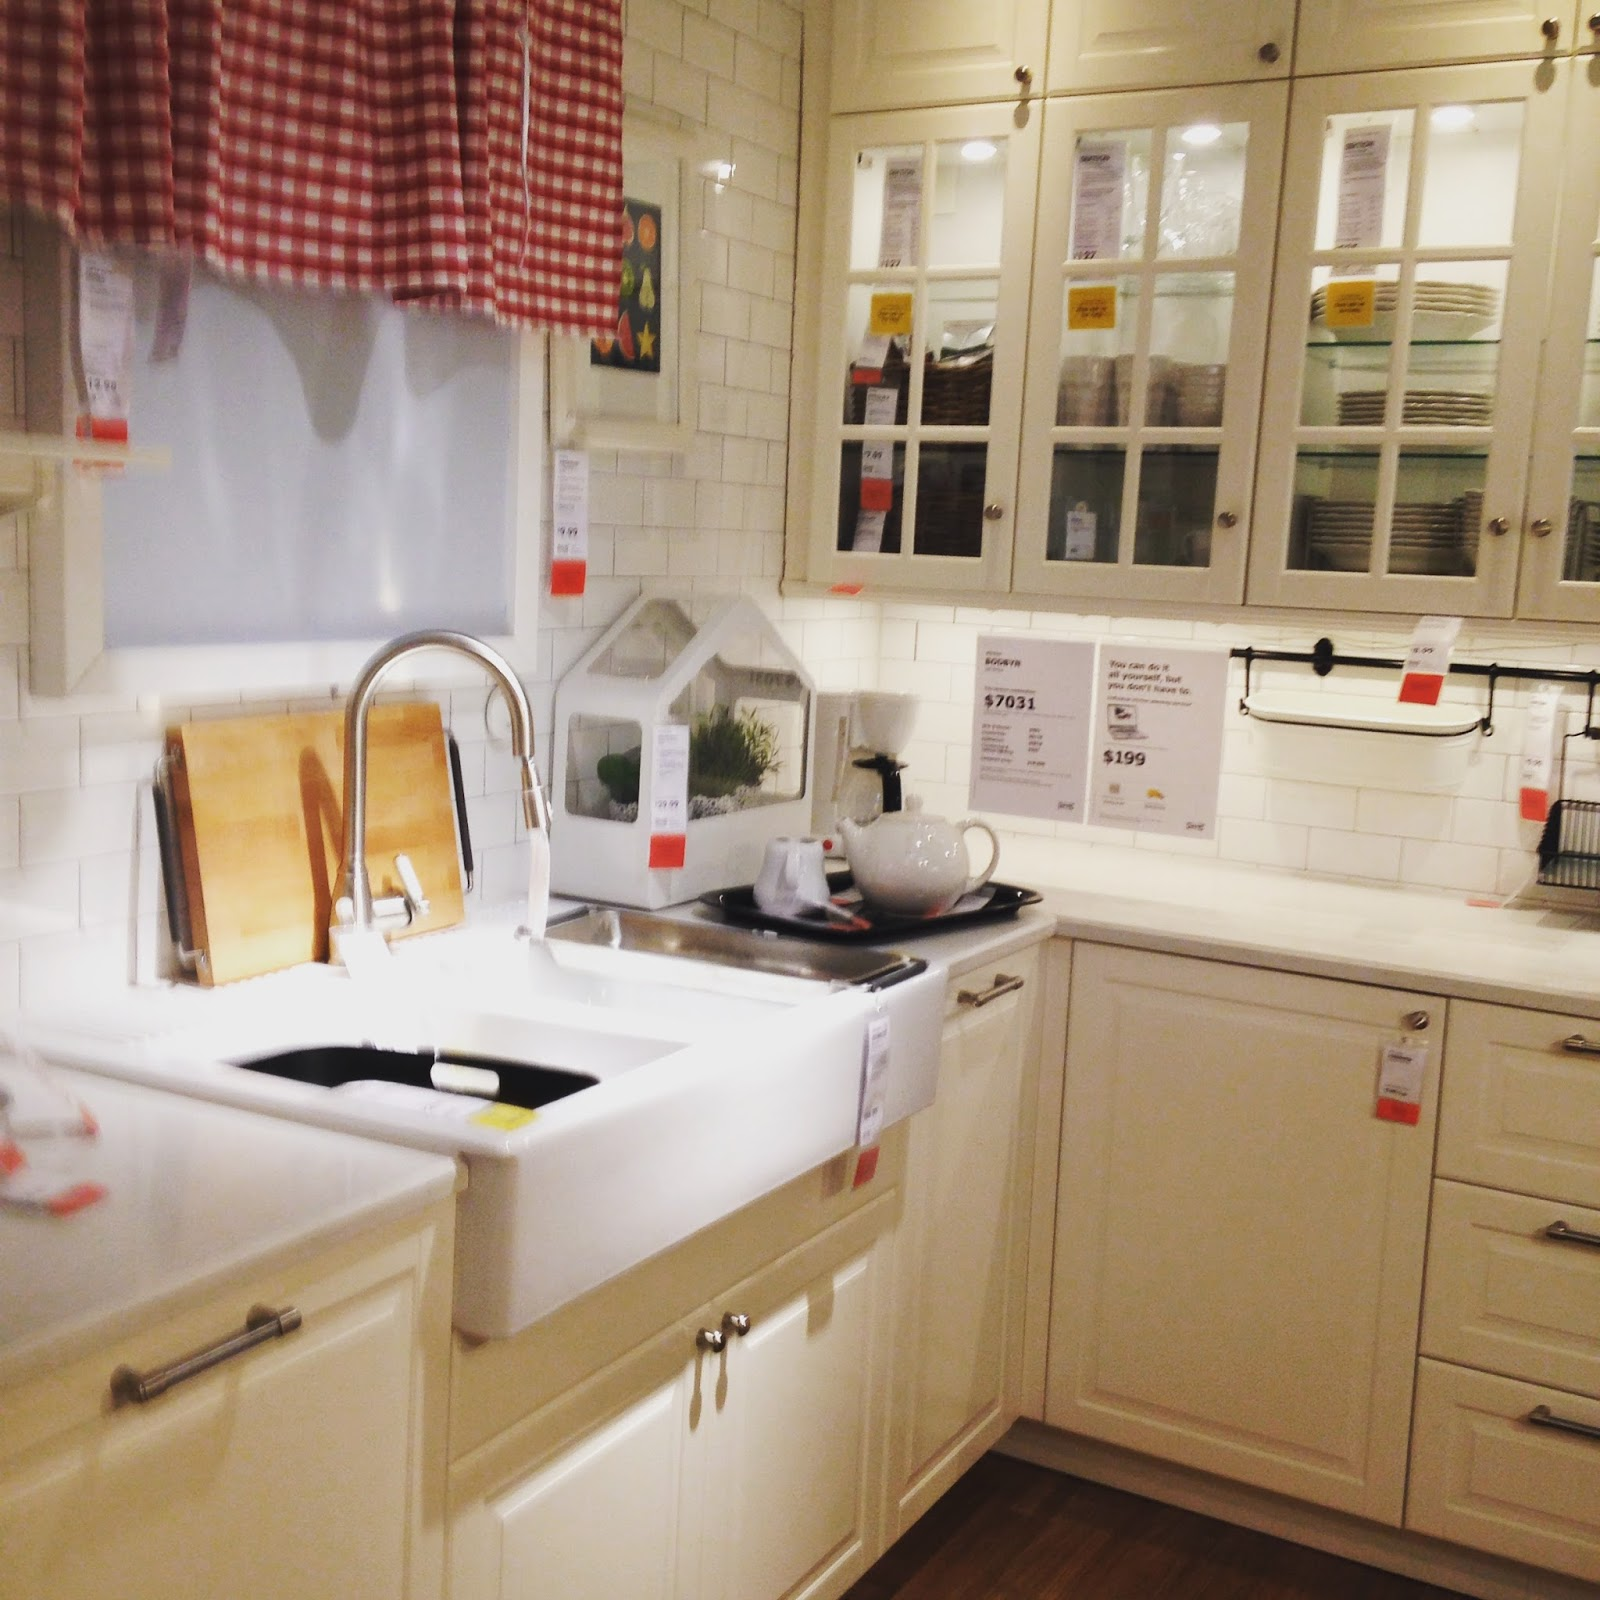 Overstock Farmhouse Sink Hospitable Pursuits Let 39s Talk About Sinks